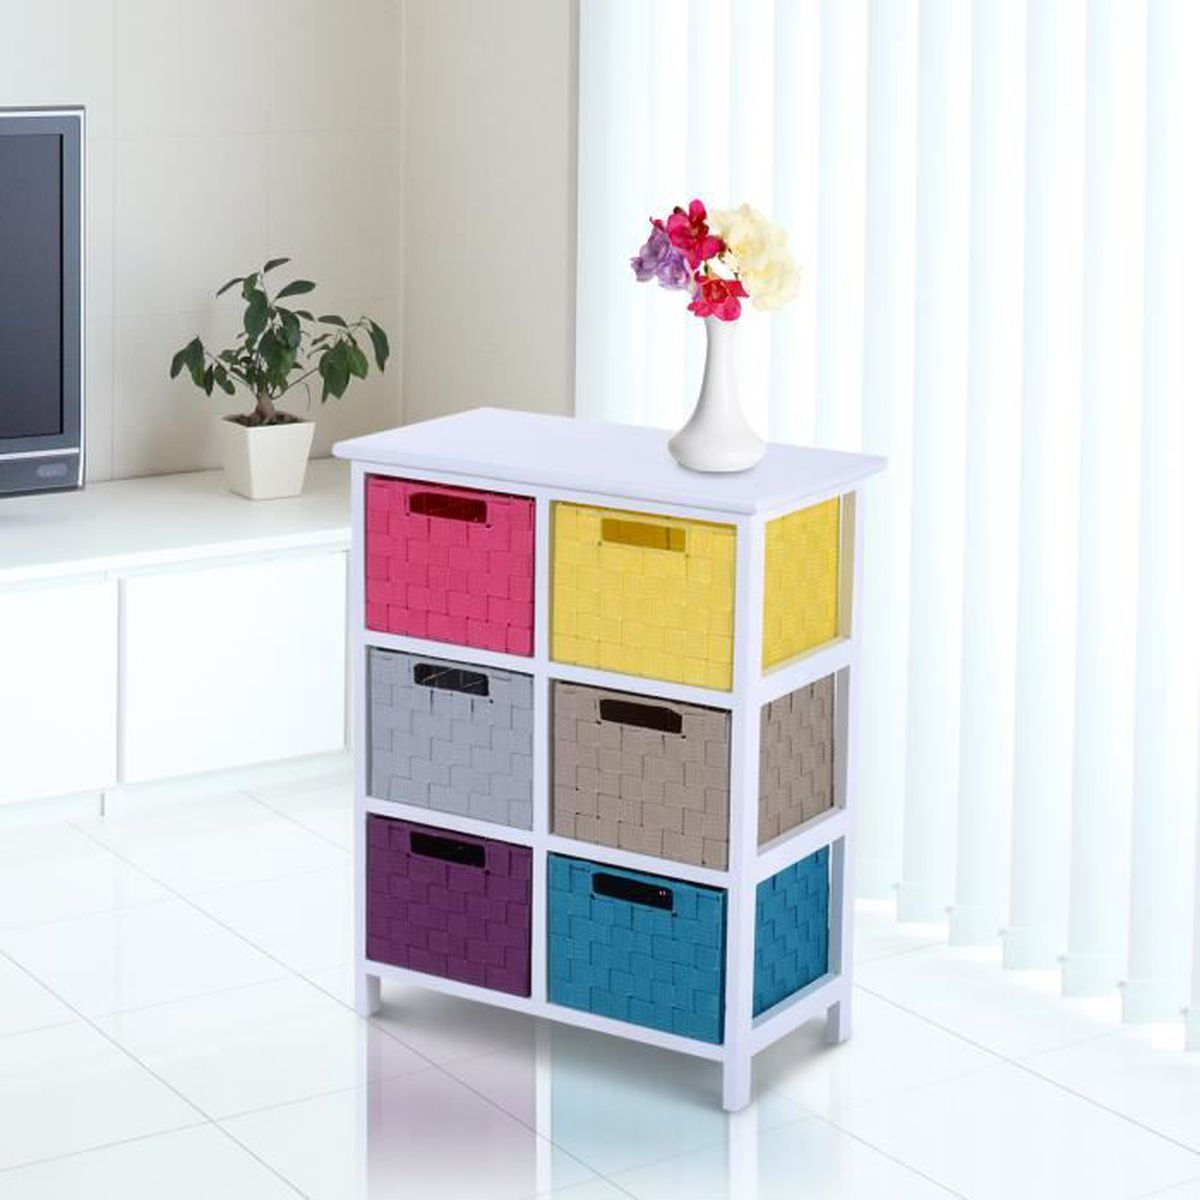 chiffonnier commode bois de paulownia 6 tiroirs multicolores 54l x 29l x 67hcm neuf 18 achat. Black Bedroom Furniture Sets. Home Design Ideas